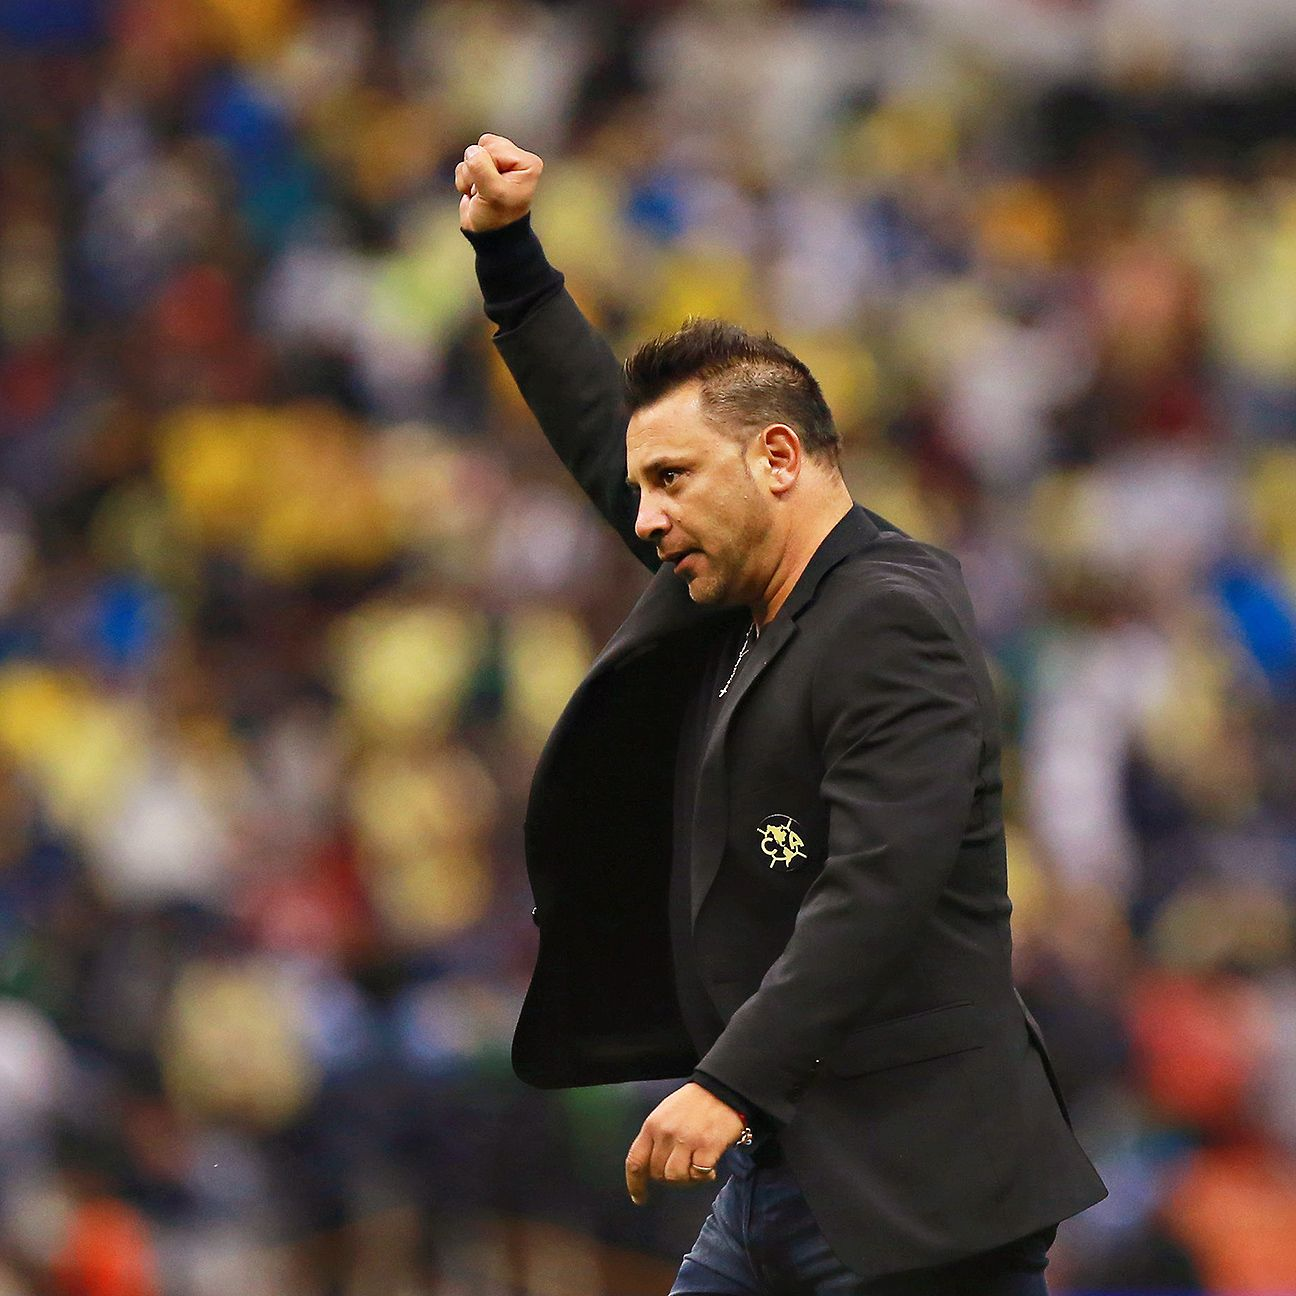 The much-maligned Antonio Mohamed departs Club America as a champion.